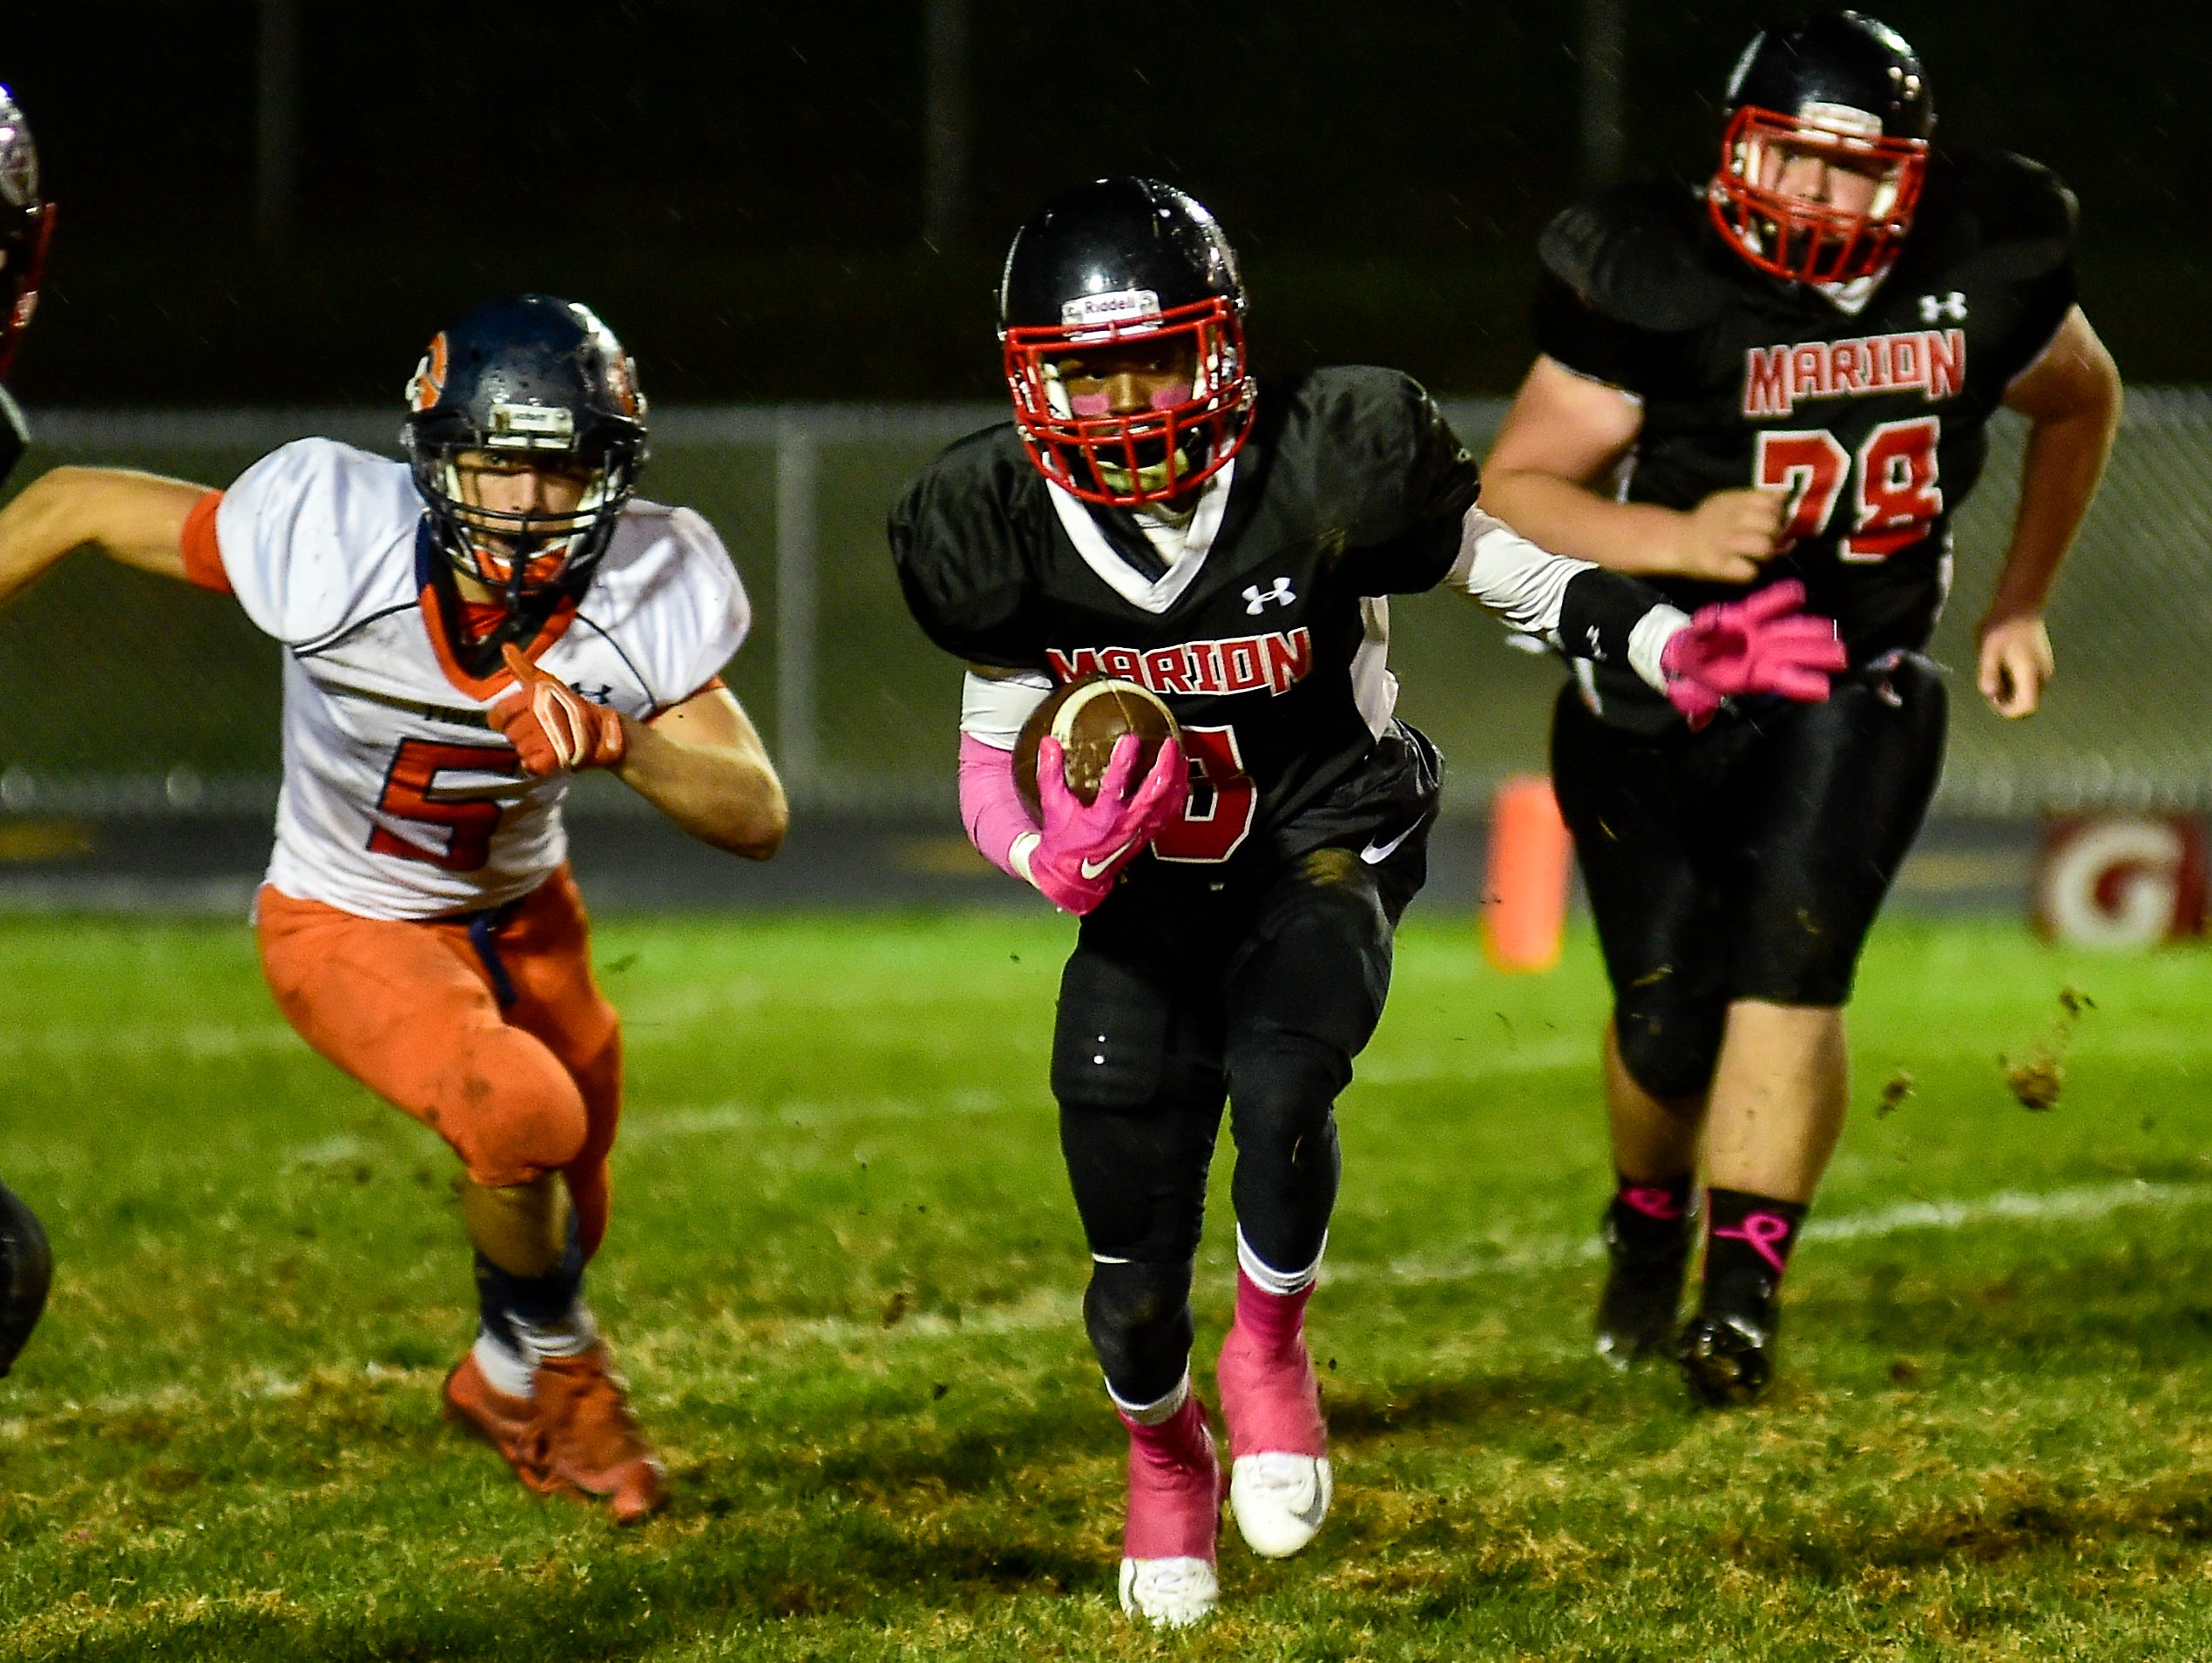 Marion Harding's TJ Jefferson looks to avoid Galion defense during the Marion Harding vs Galion game on Friday.